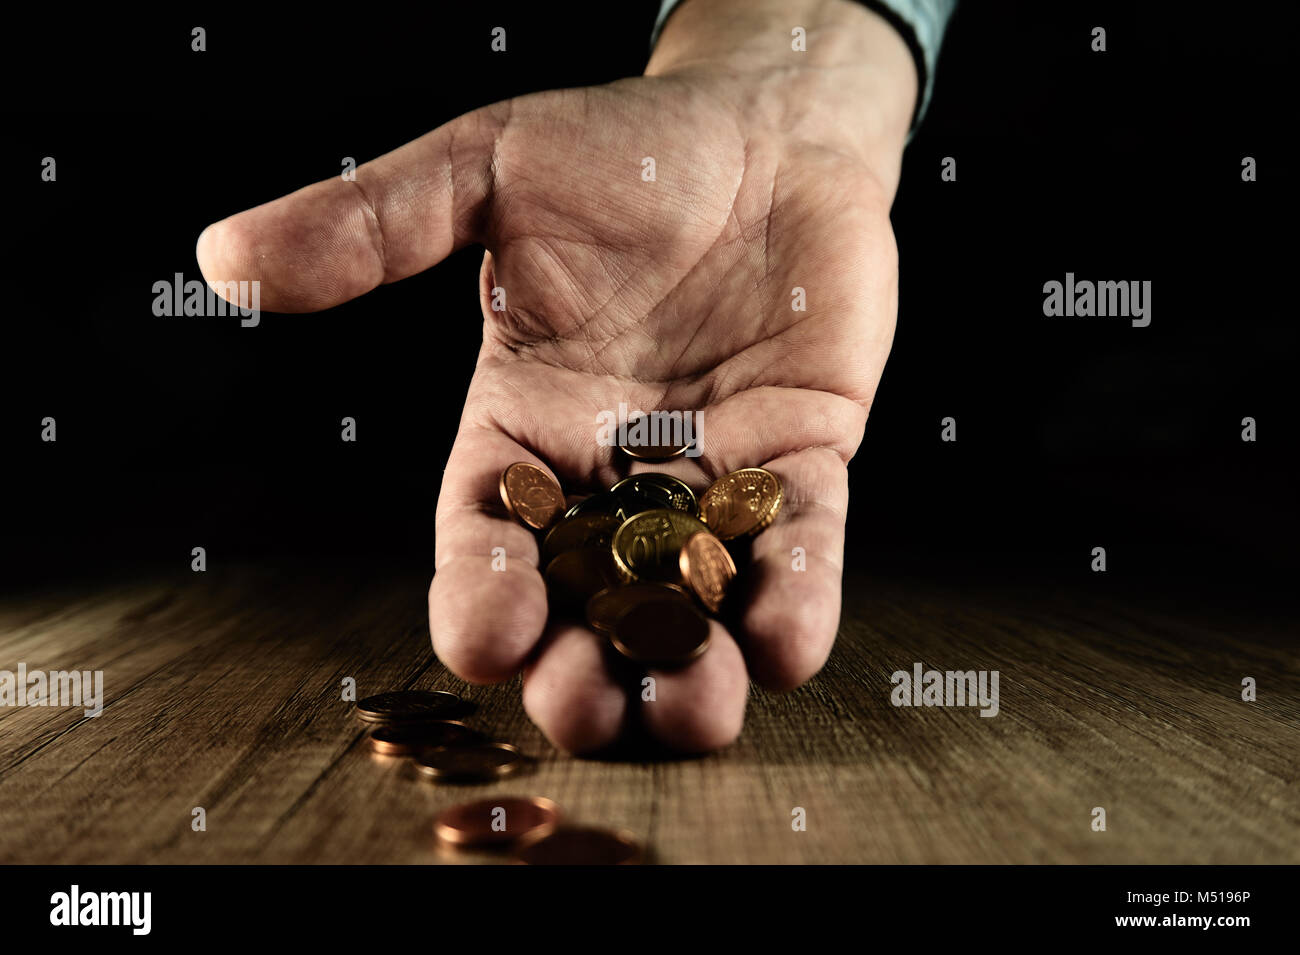 Handful of coins in the palm - Stock Image